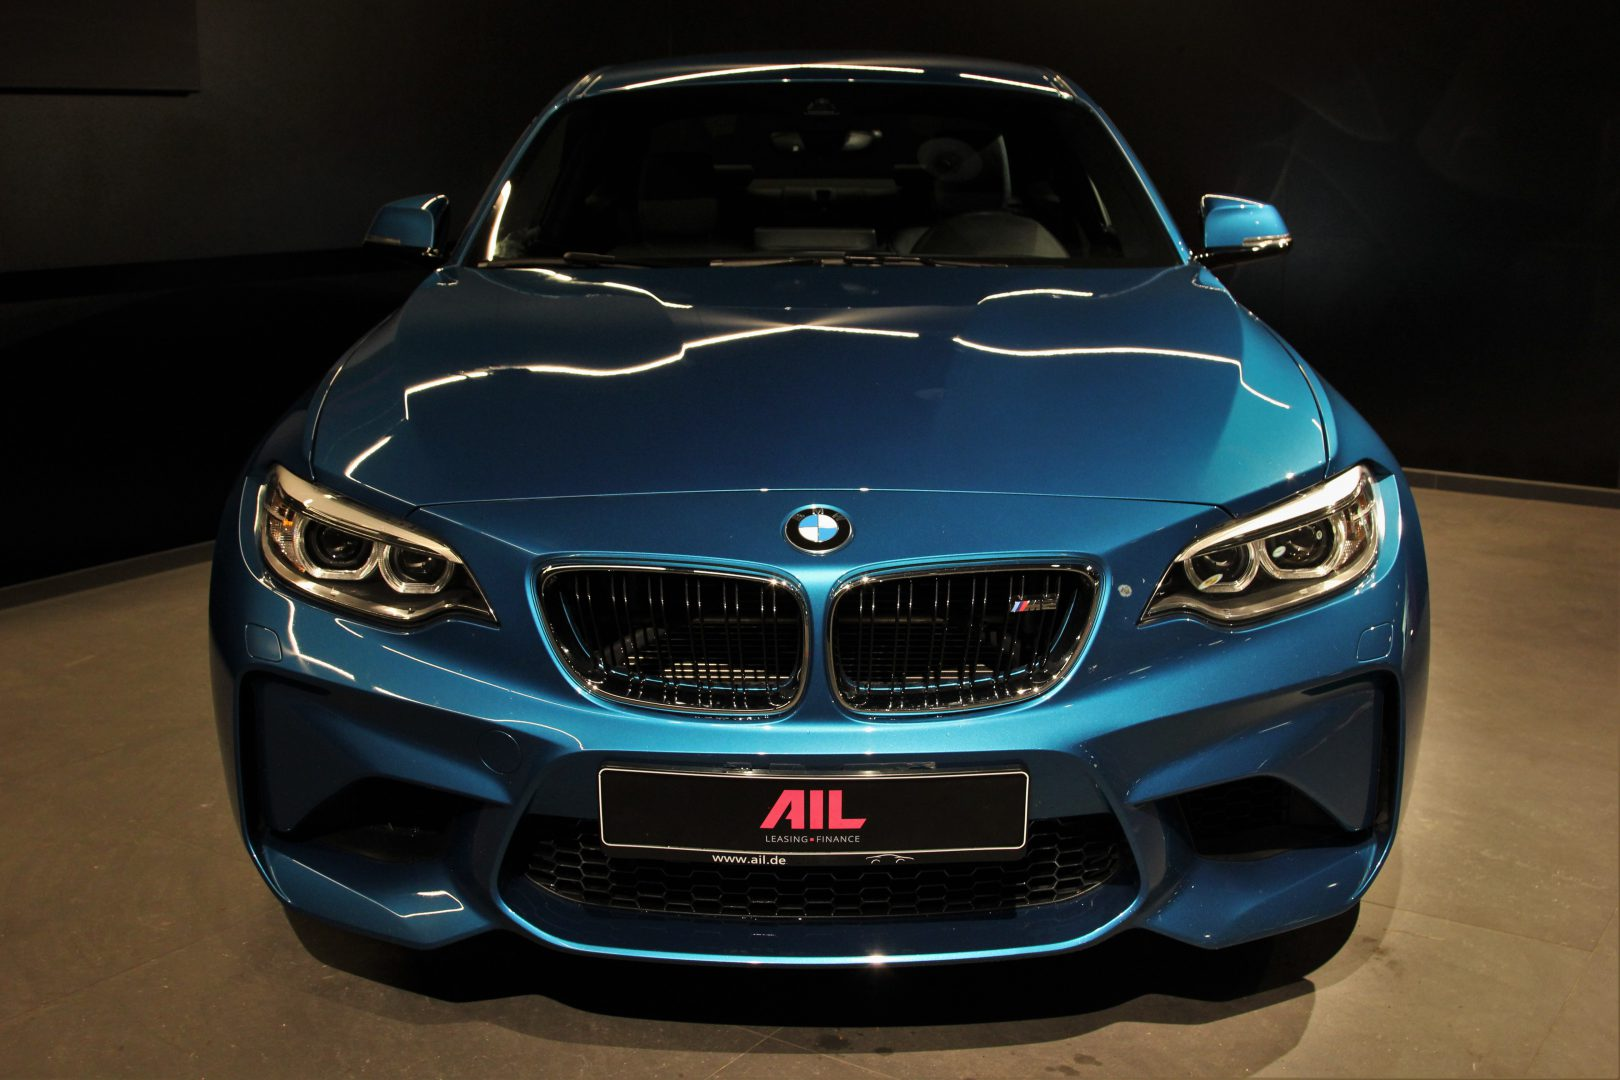 AIL BMW M2 LONG BEACH BLUE DKG  7